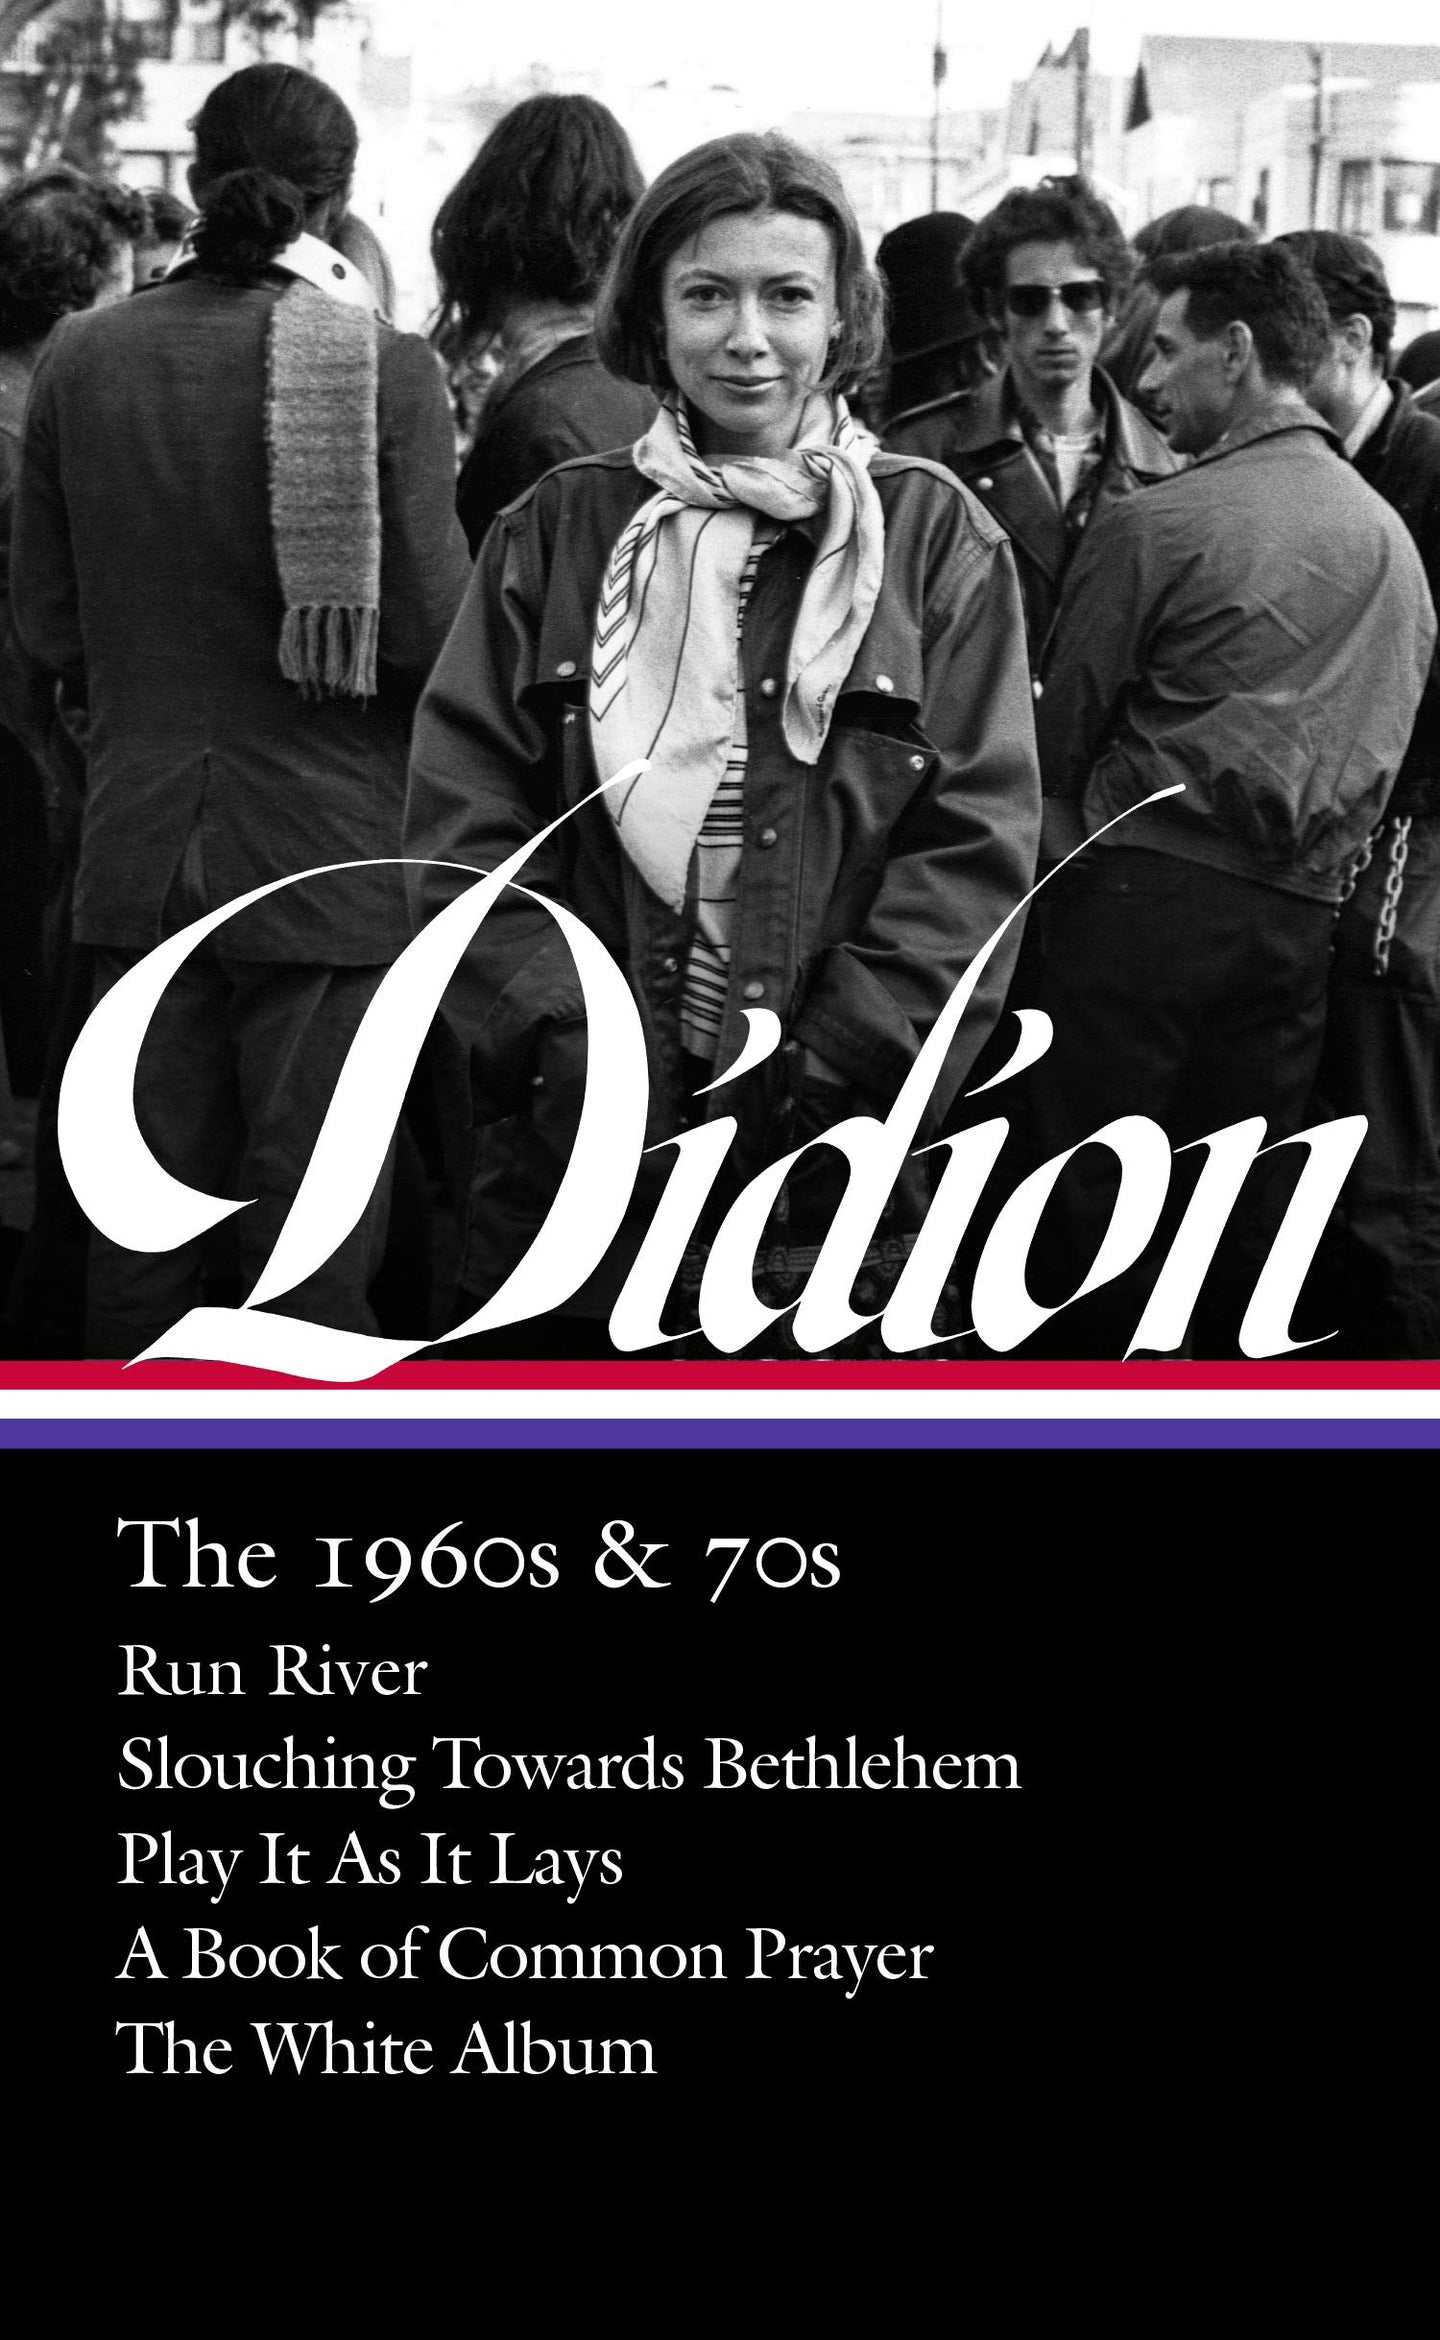 Joan Didion: The 1960s & 70s